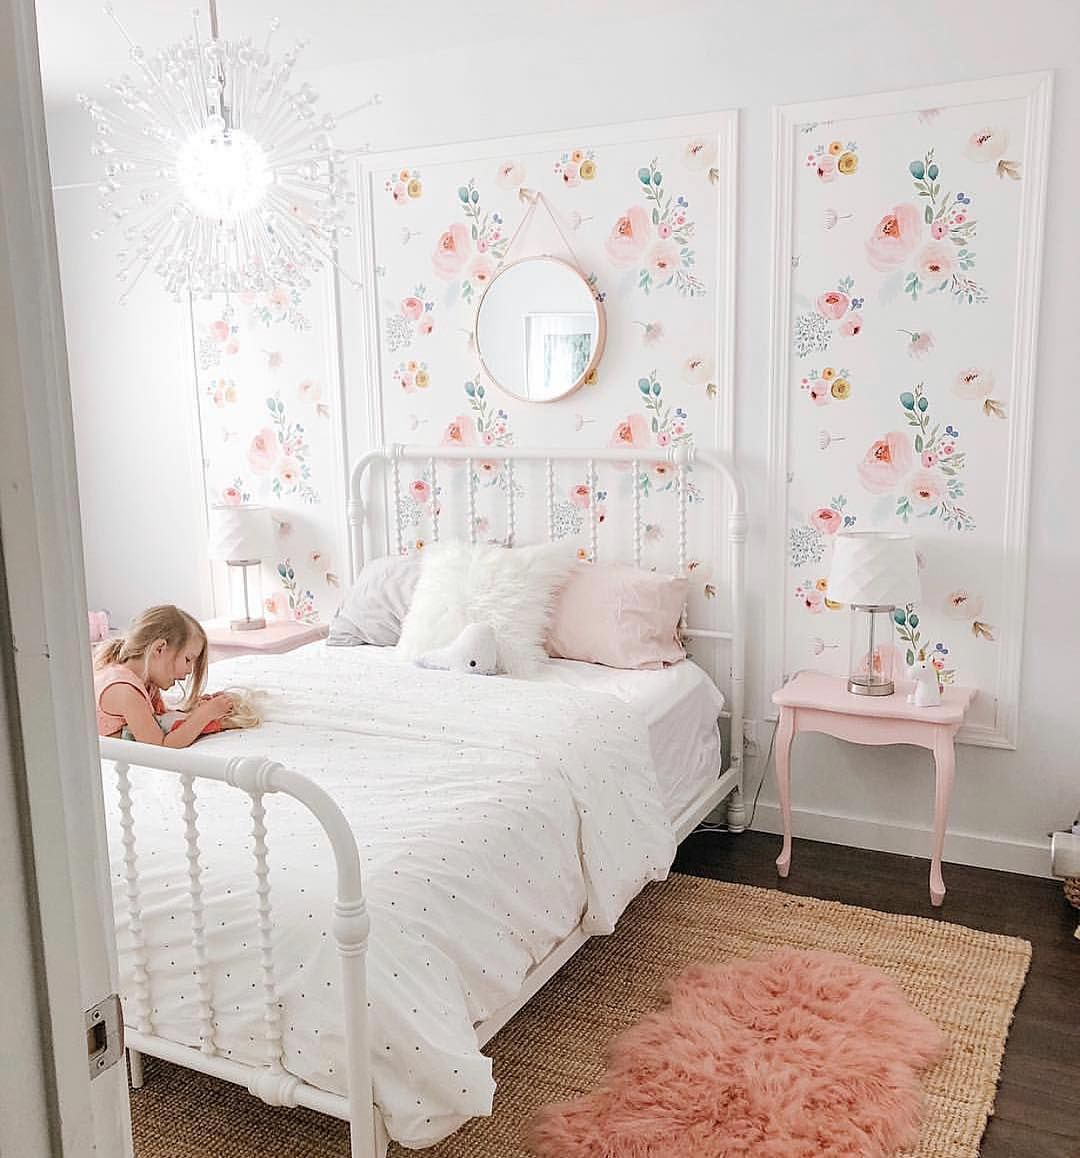 "Decor For Kids® on Instagram: ""Such a pretty space! Love the molding and wallpaper application🌸Credit to @the.dupy.girls"""